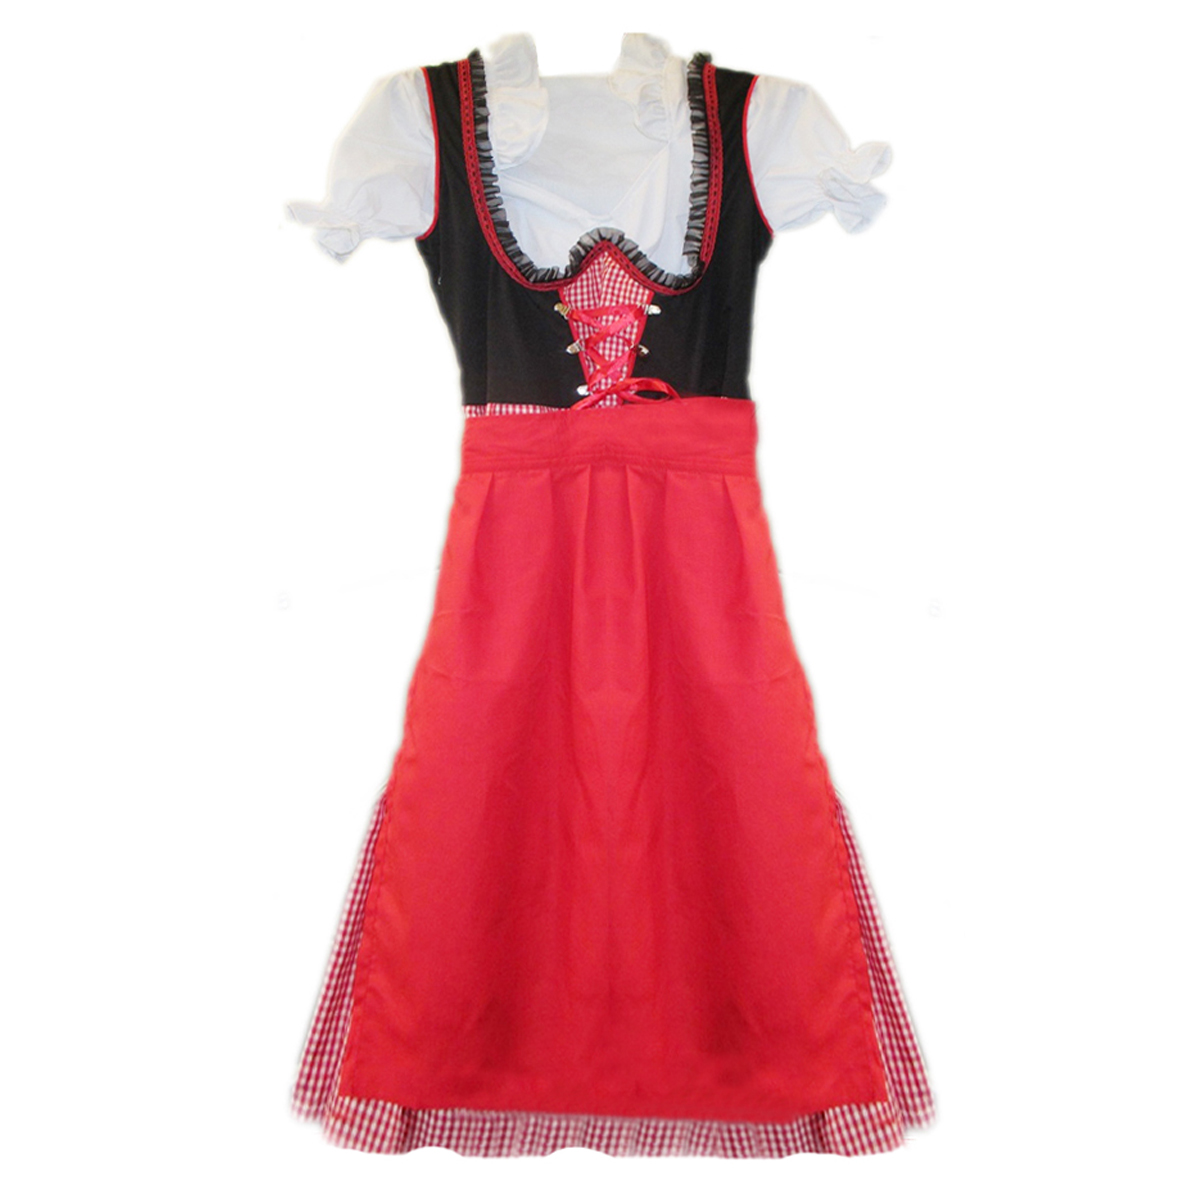 CHECKERED DIRNDL WITH LACES